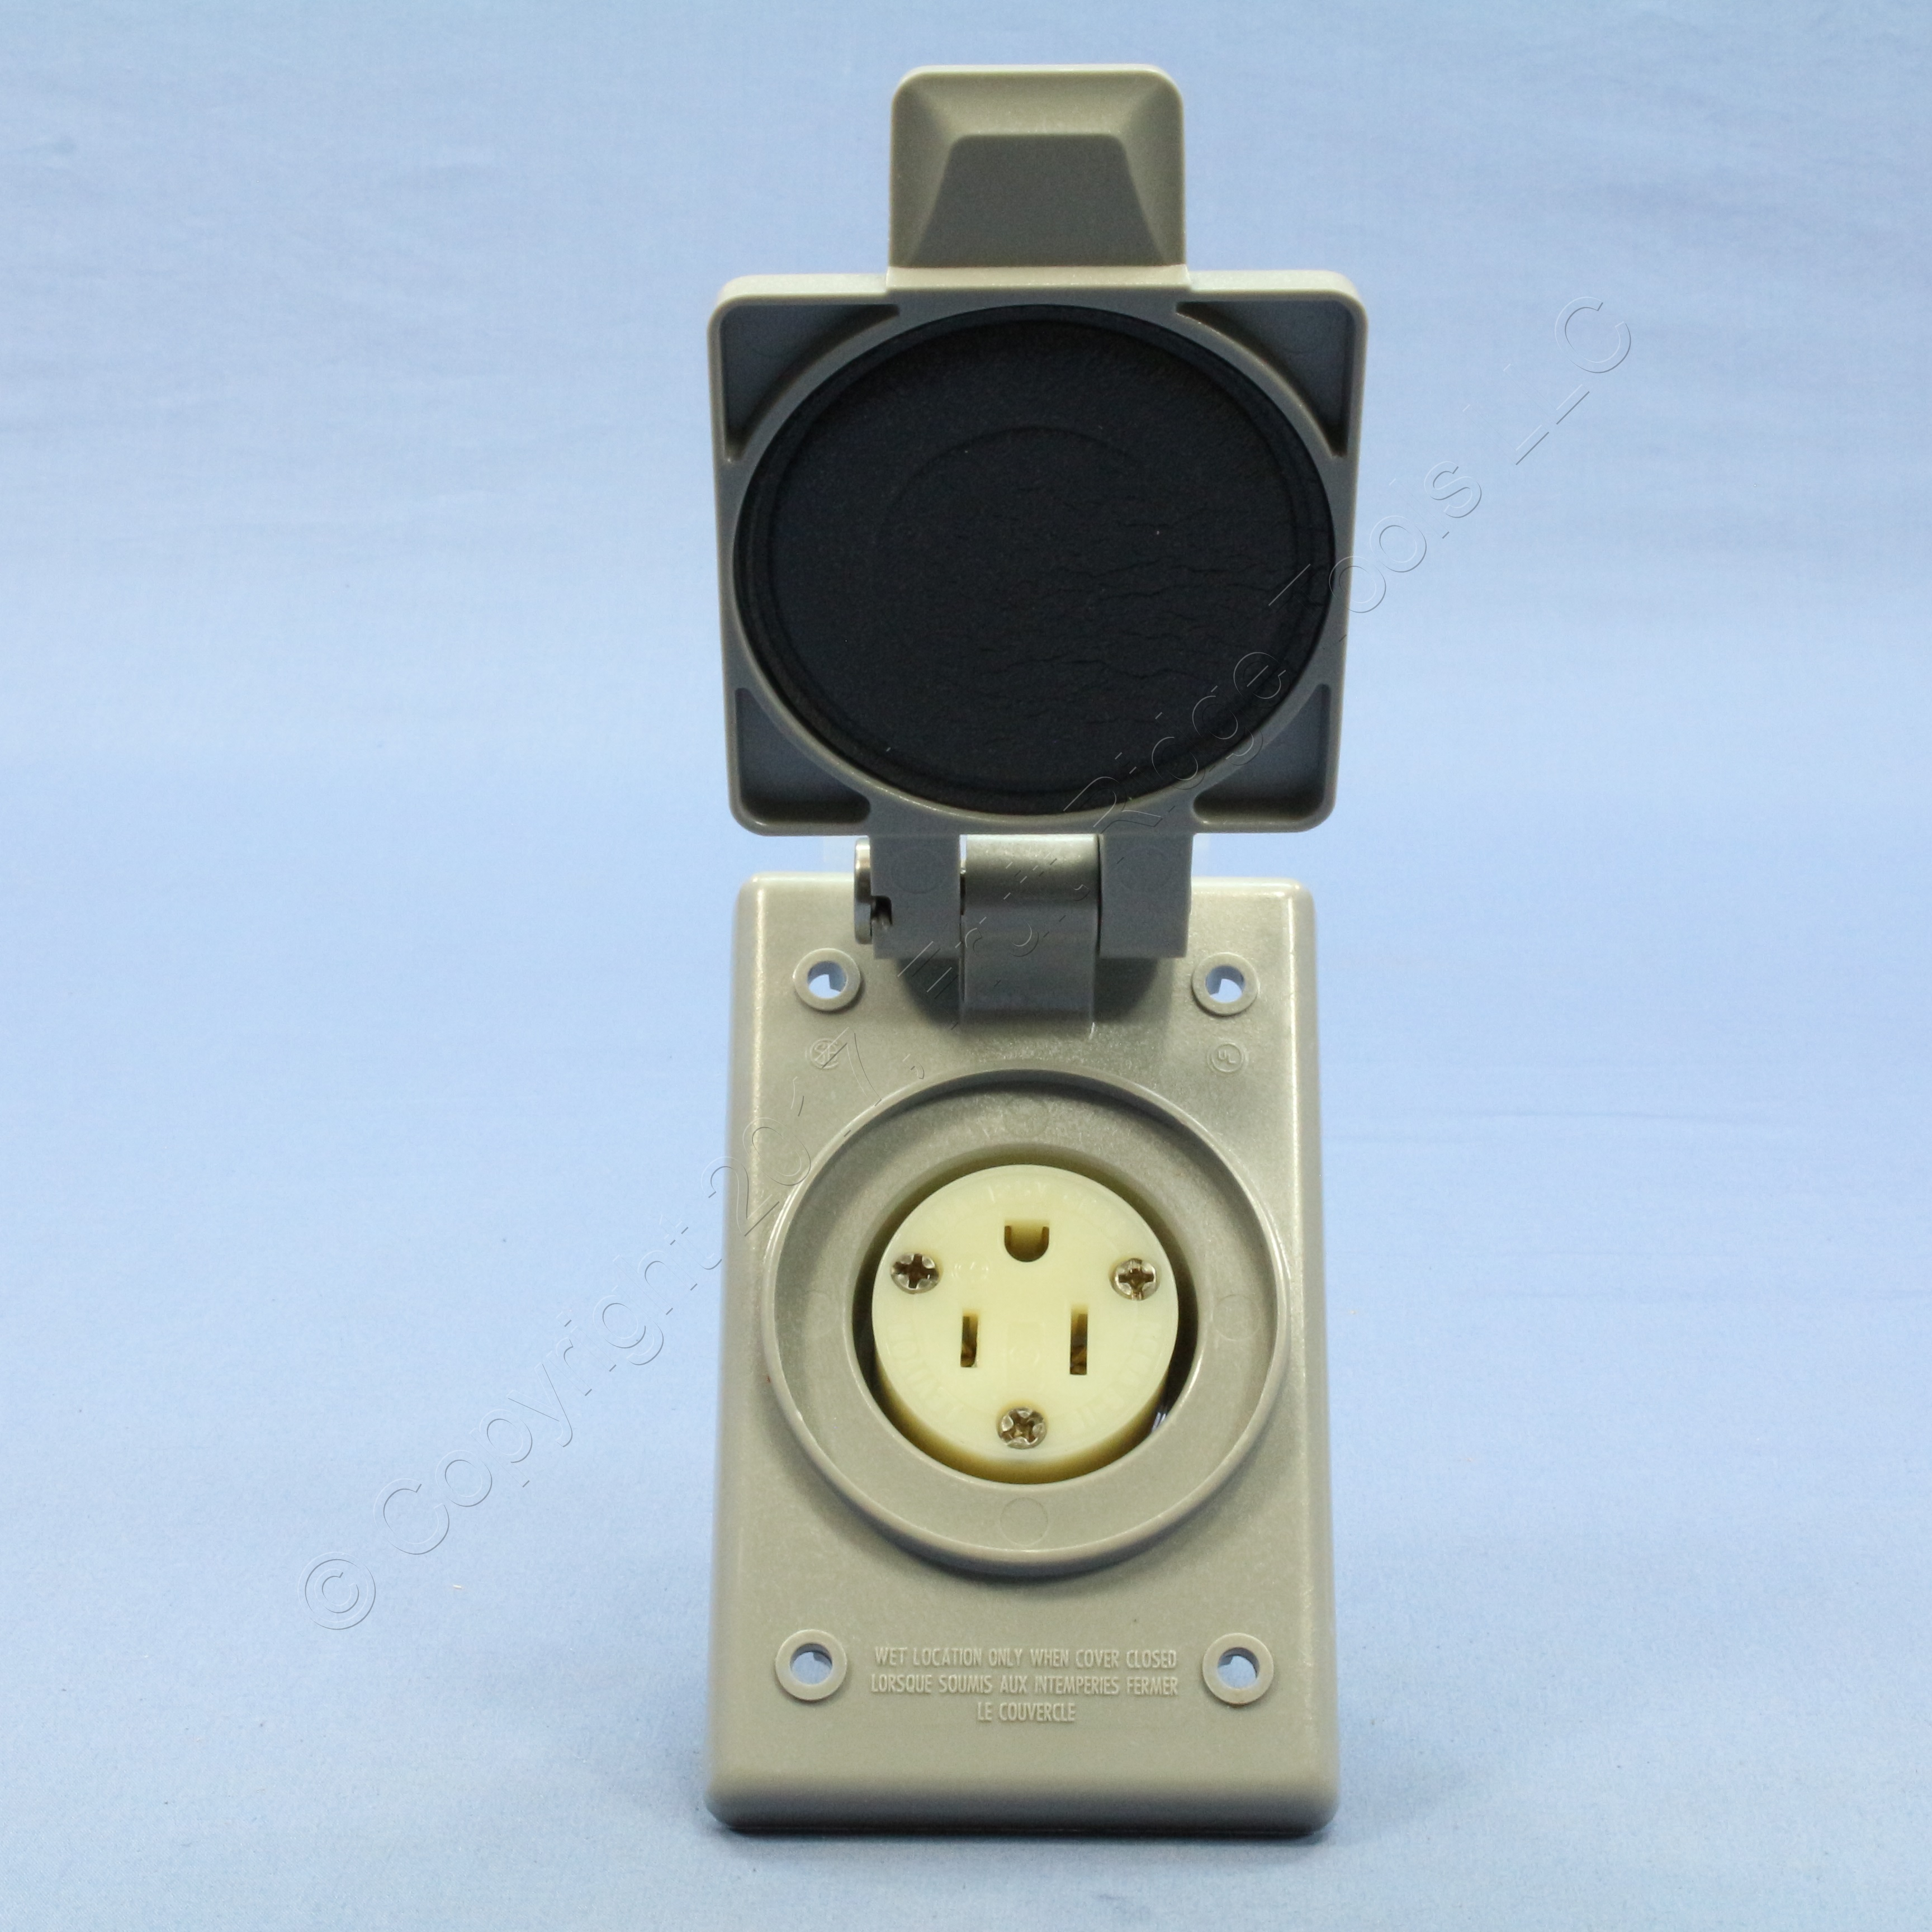 Leviton Industrial Flanged Outlet Weather Resistant Cover 5 15 15a Wiring Devices Philippines 125v 5279 Fwp